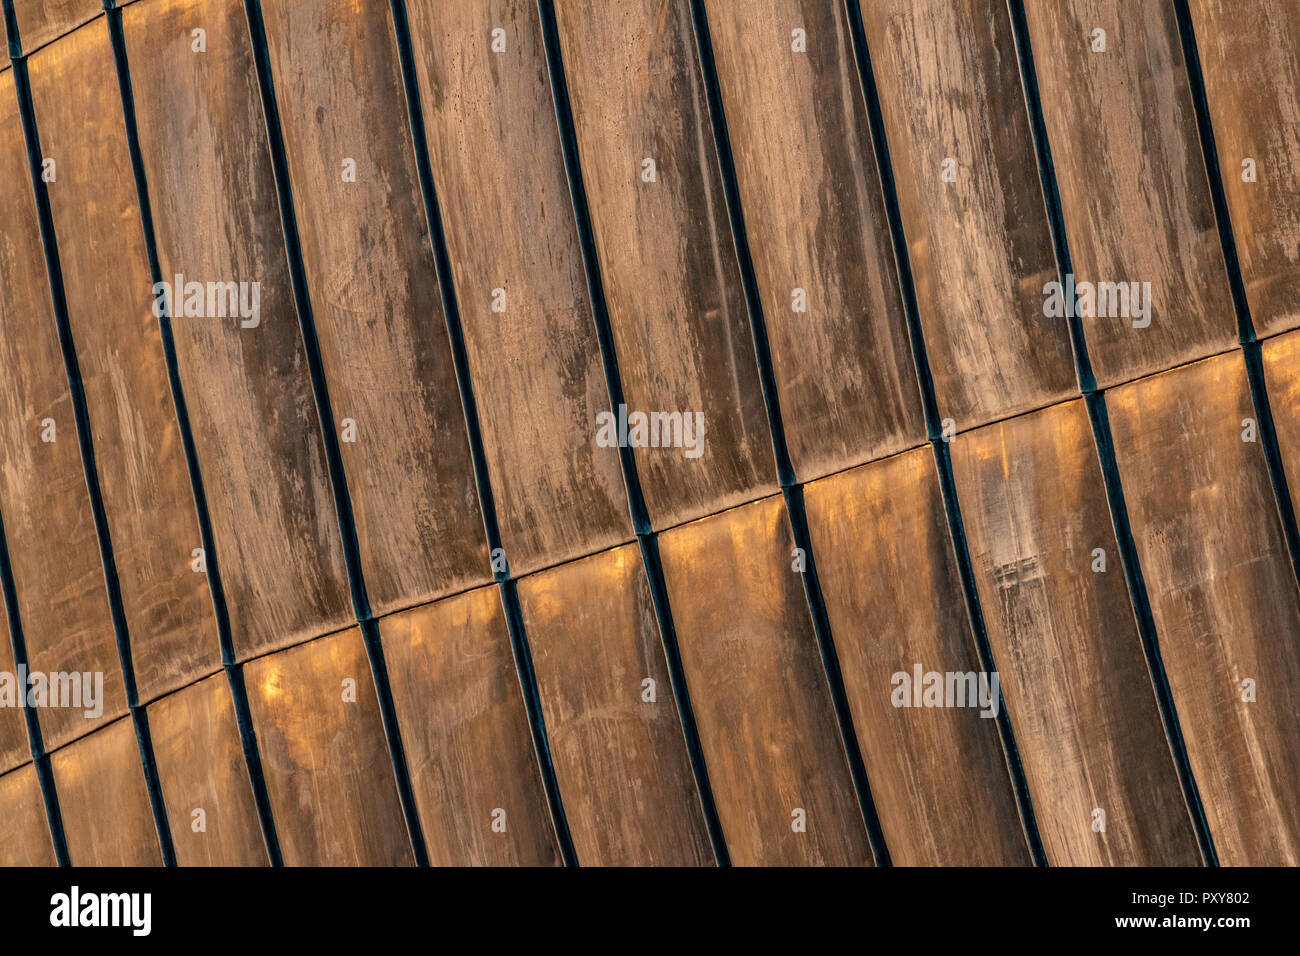 Details of rusty steel structural sheets, used for external roofing surface in organic architectural design. Surface with zinc traces. - Stock Image